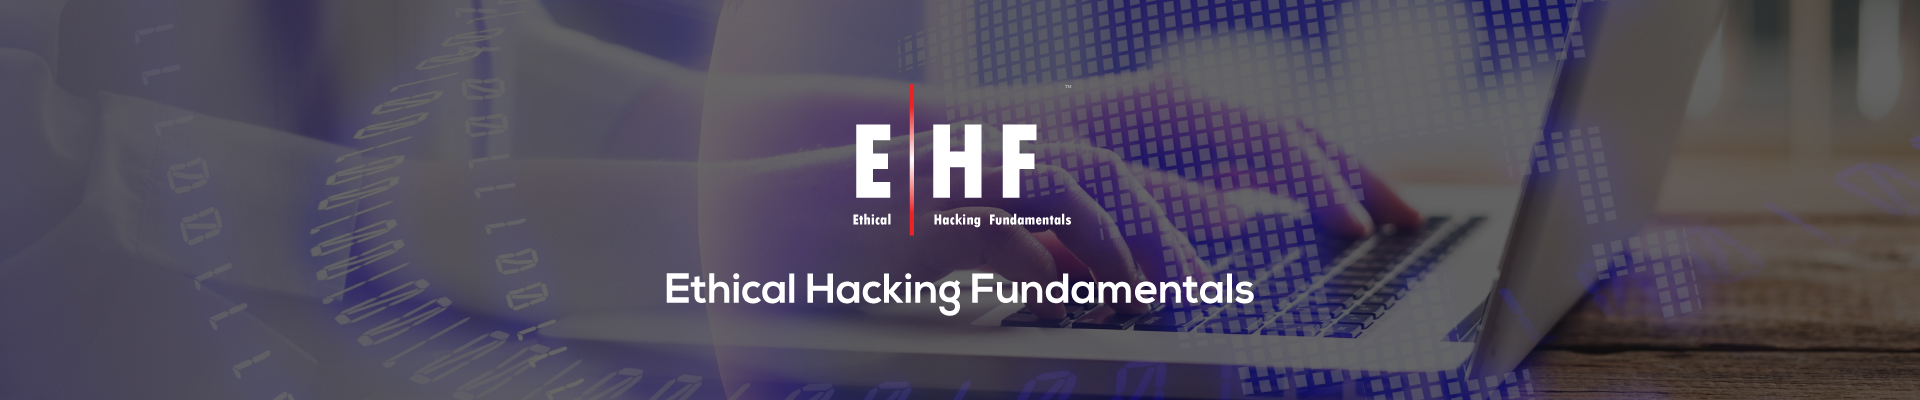 Ethical Hacking Fundamentals!